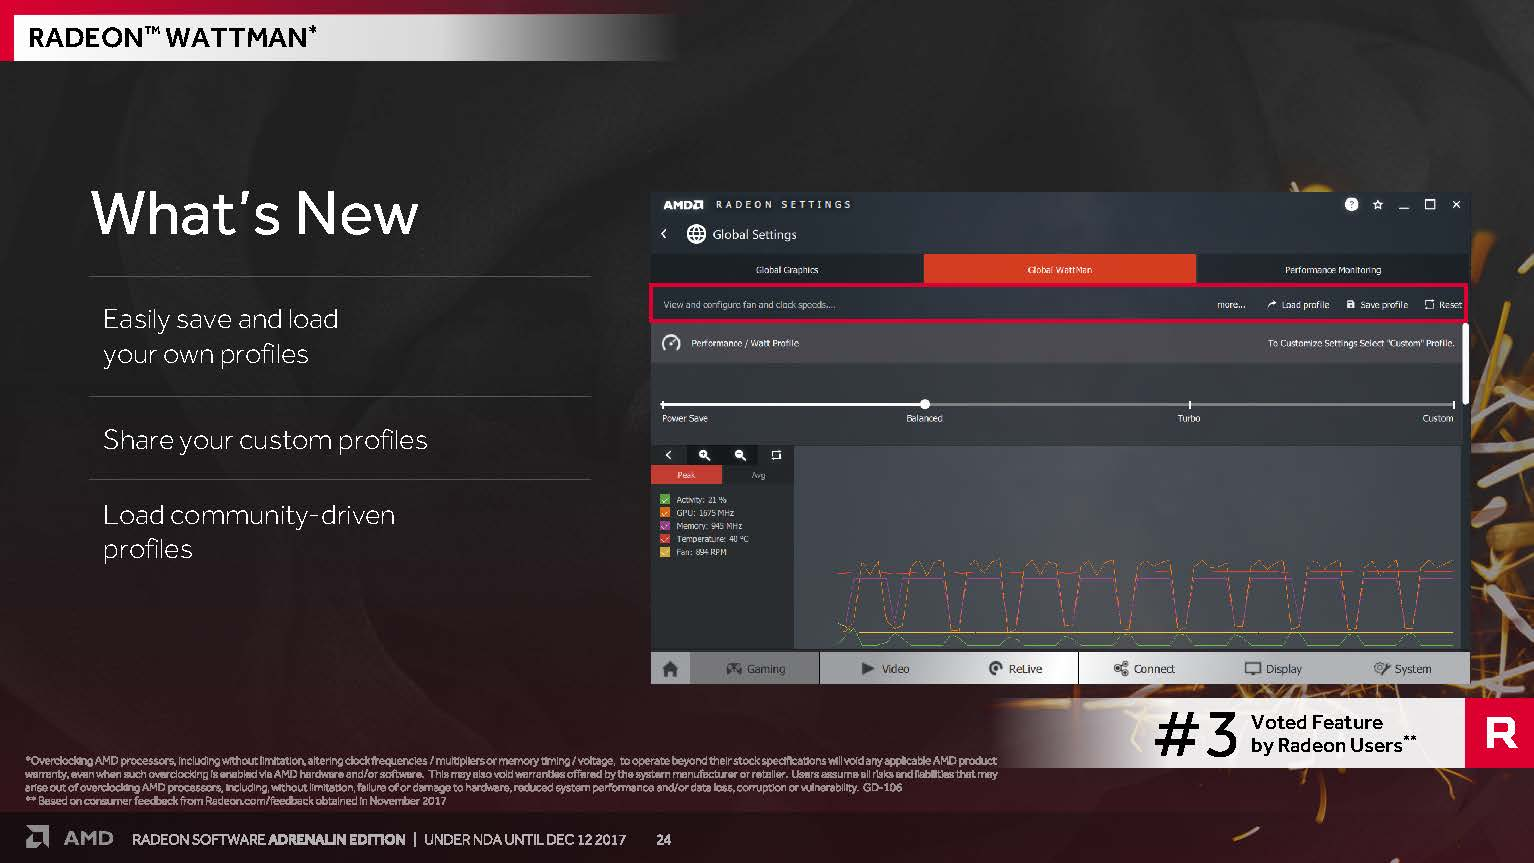 amd radeon software adrenaline edition december press deck Page 24